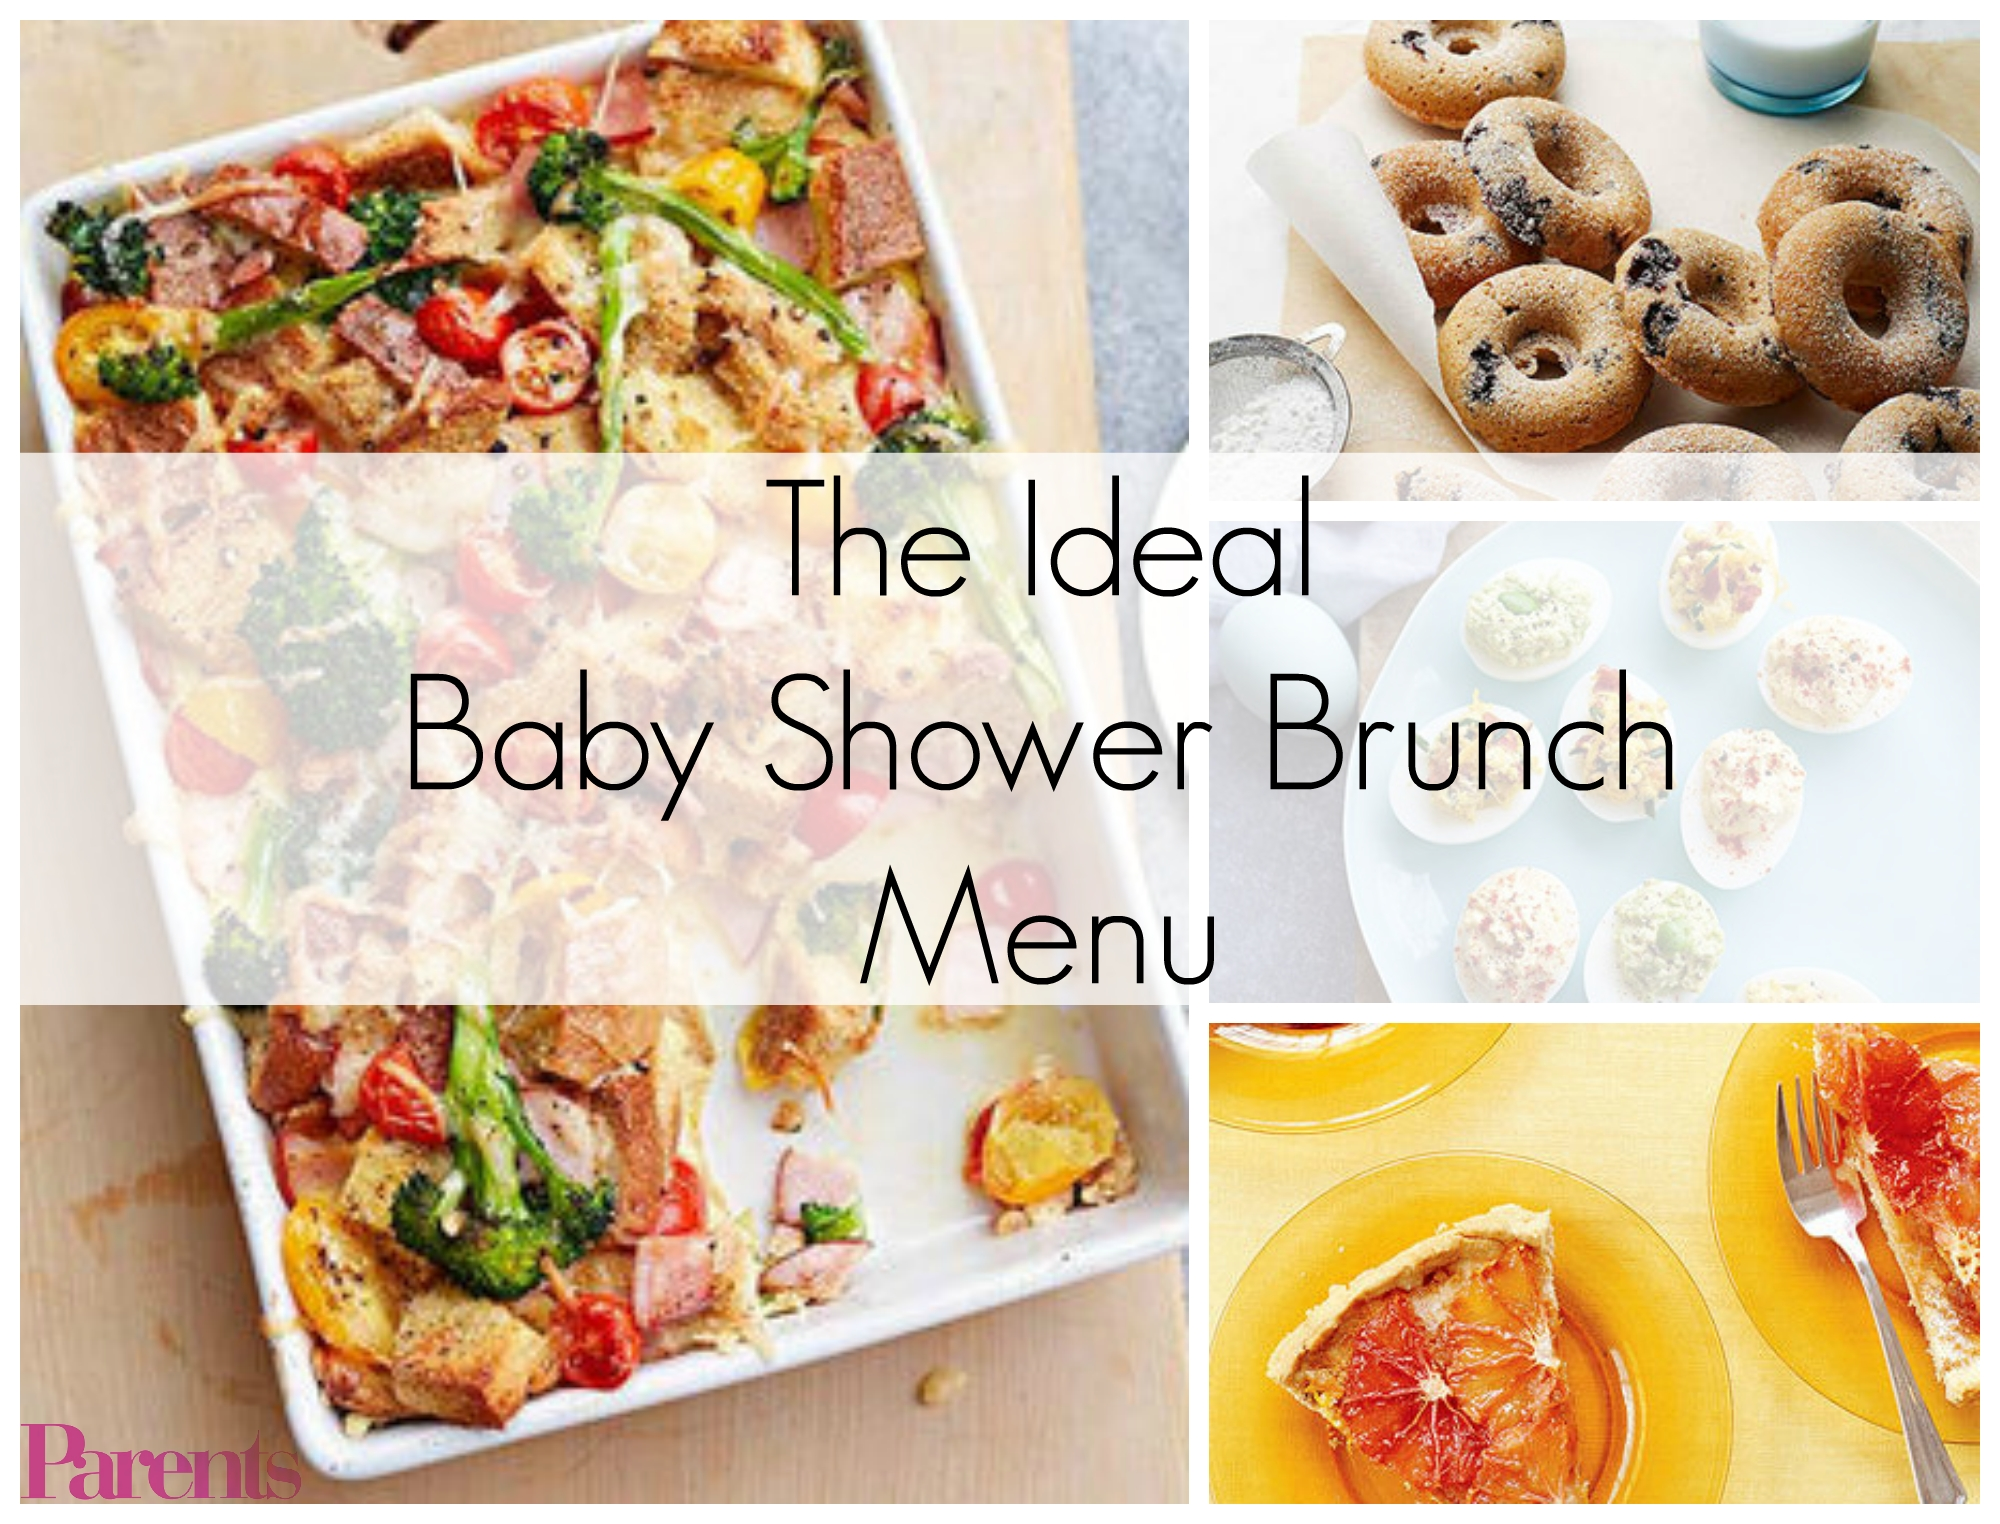 the ideal baby shower brunch menu | baby shower brunch, brunch menu